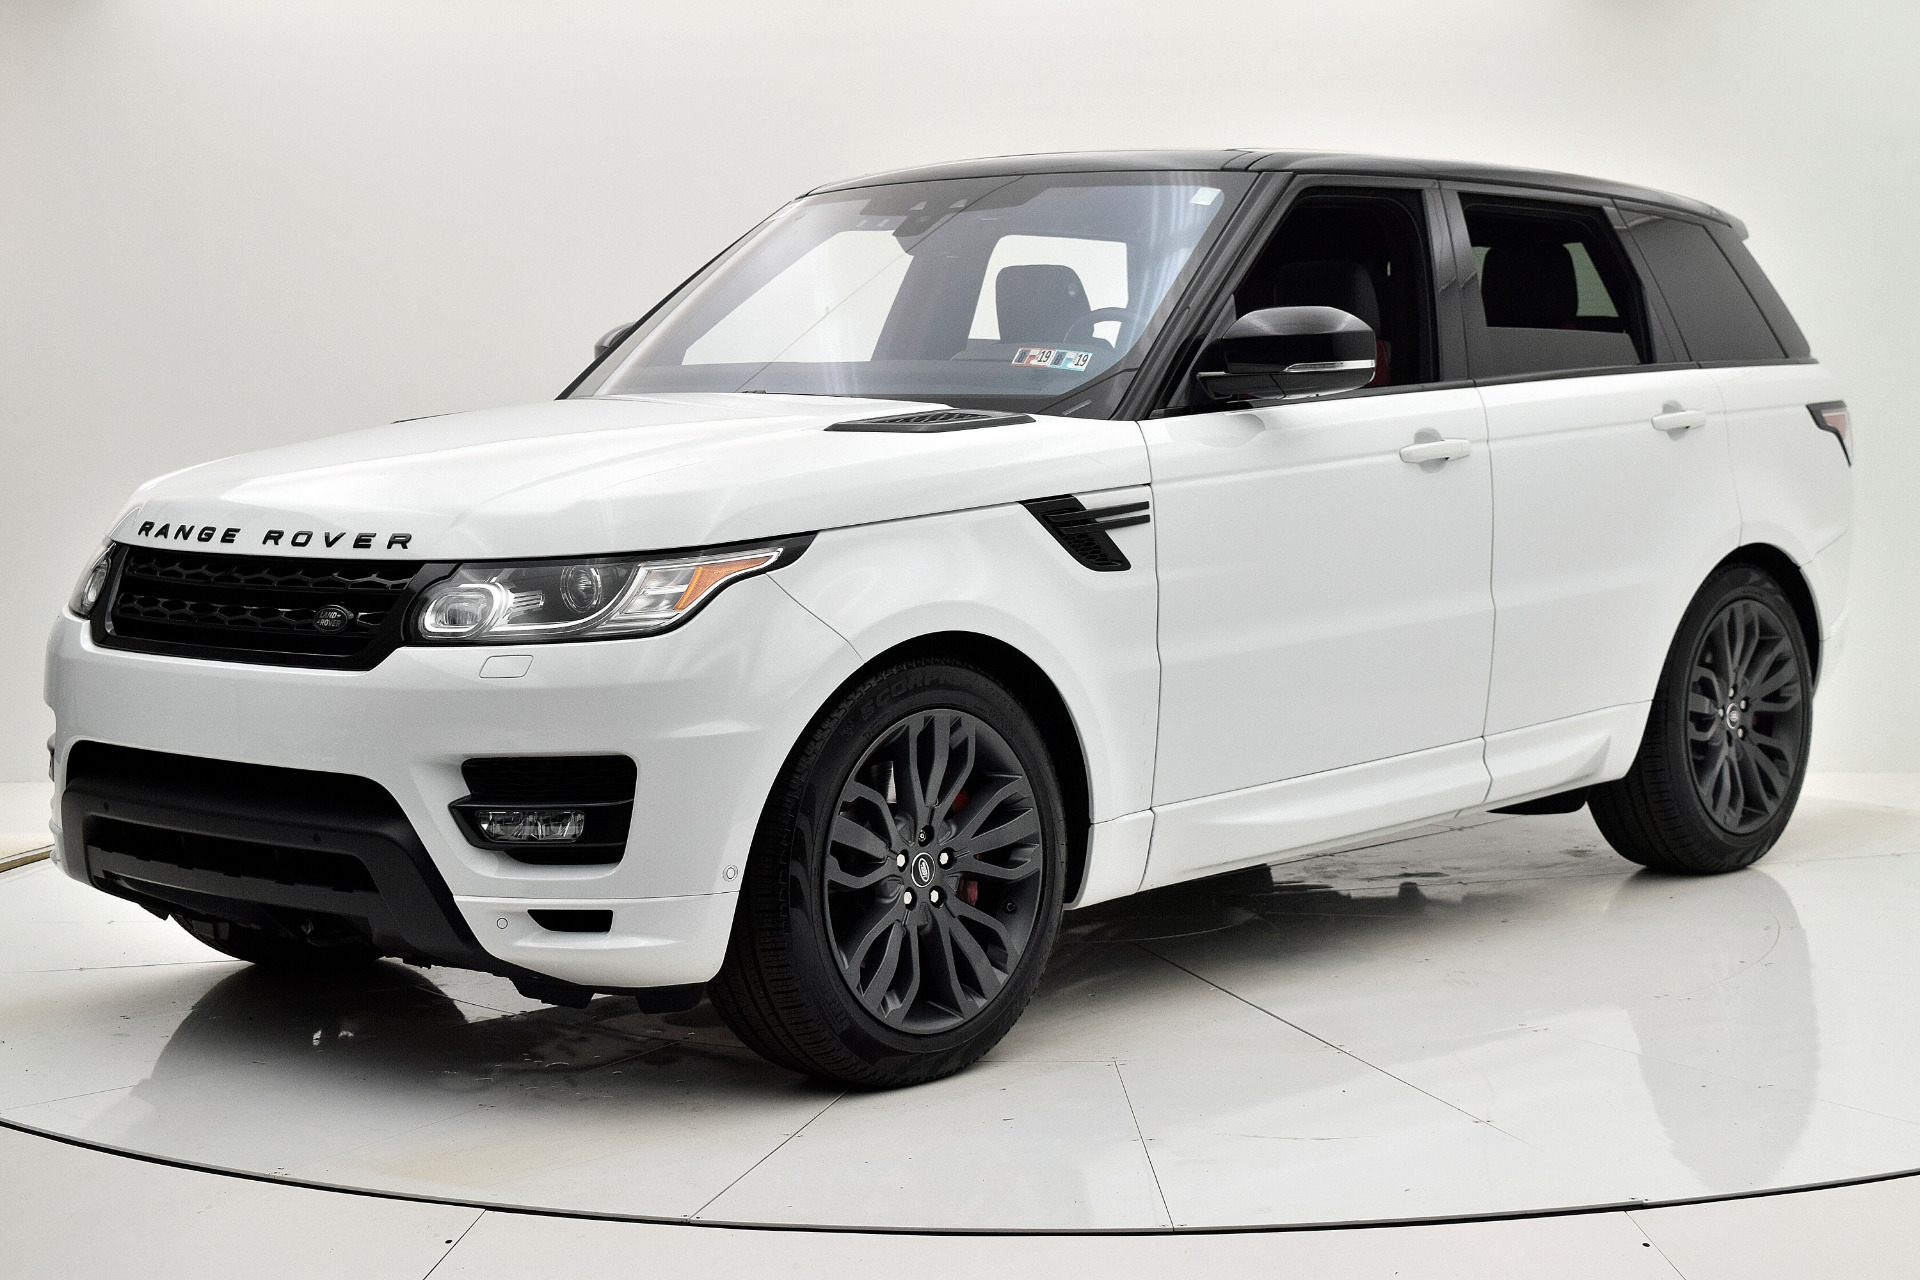 Land Rover Range Rover Sport 2017 For Sale $73880 Stock Number 18BE109AJI